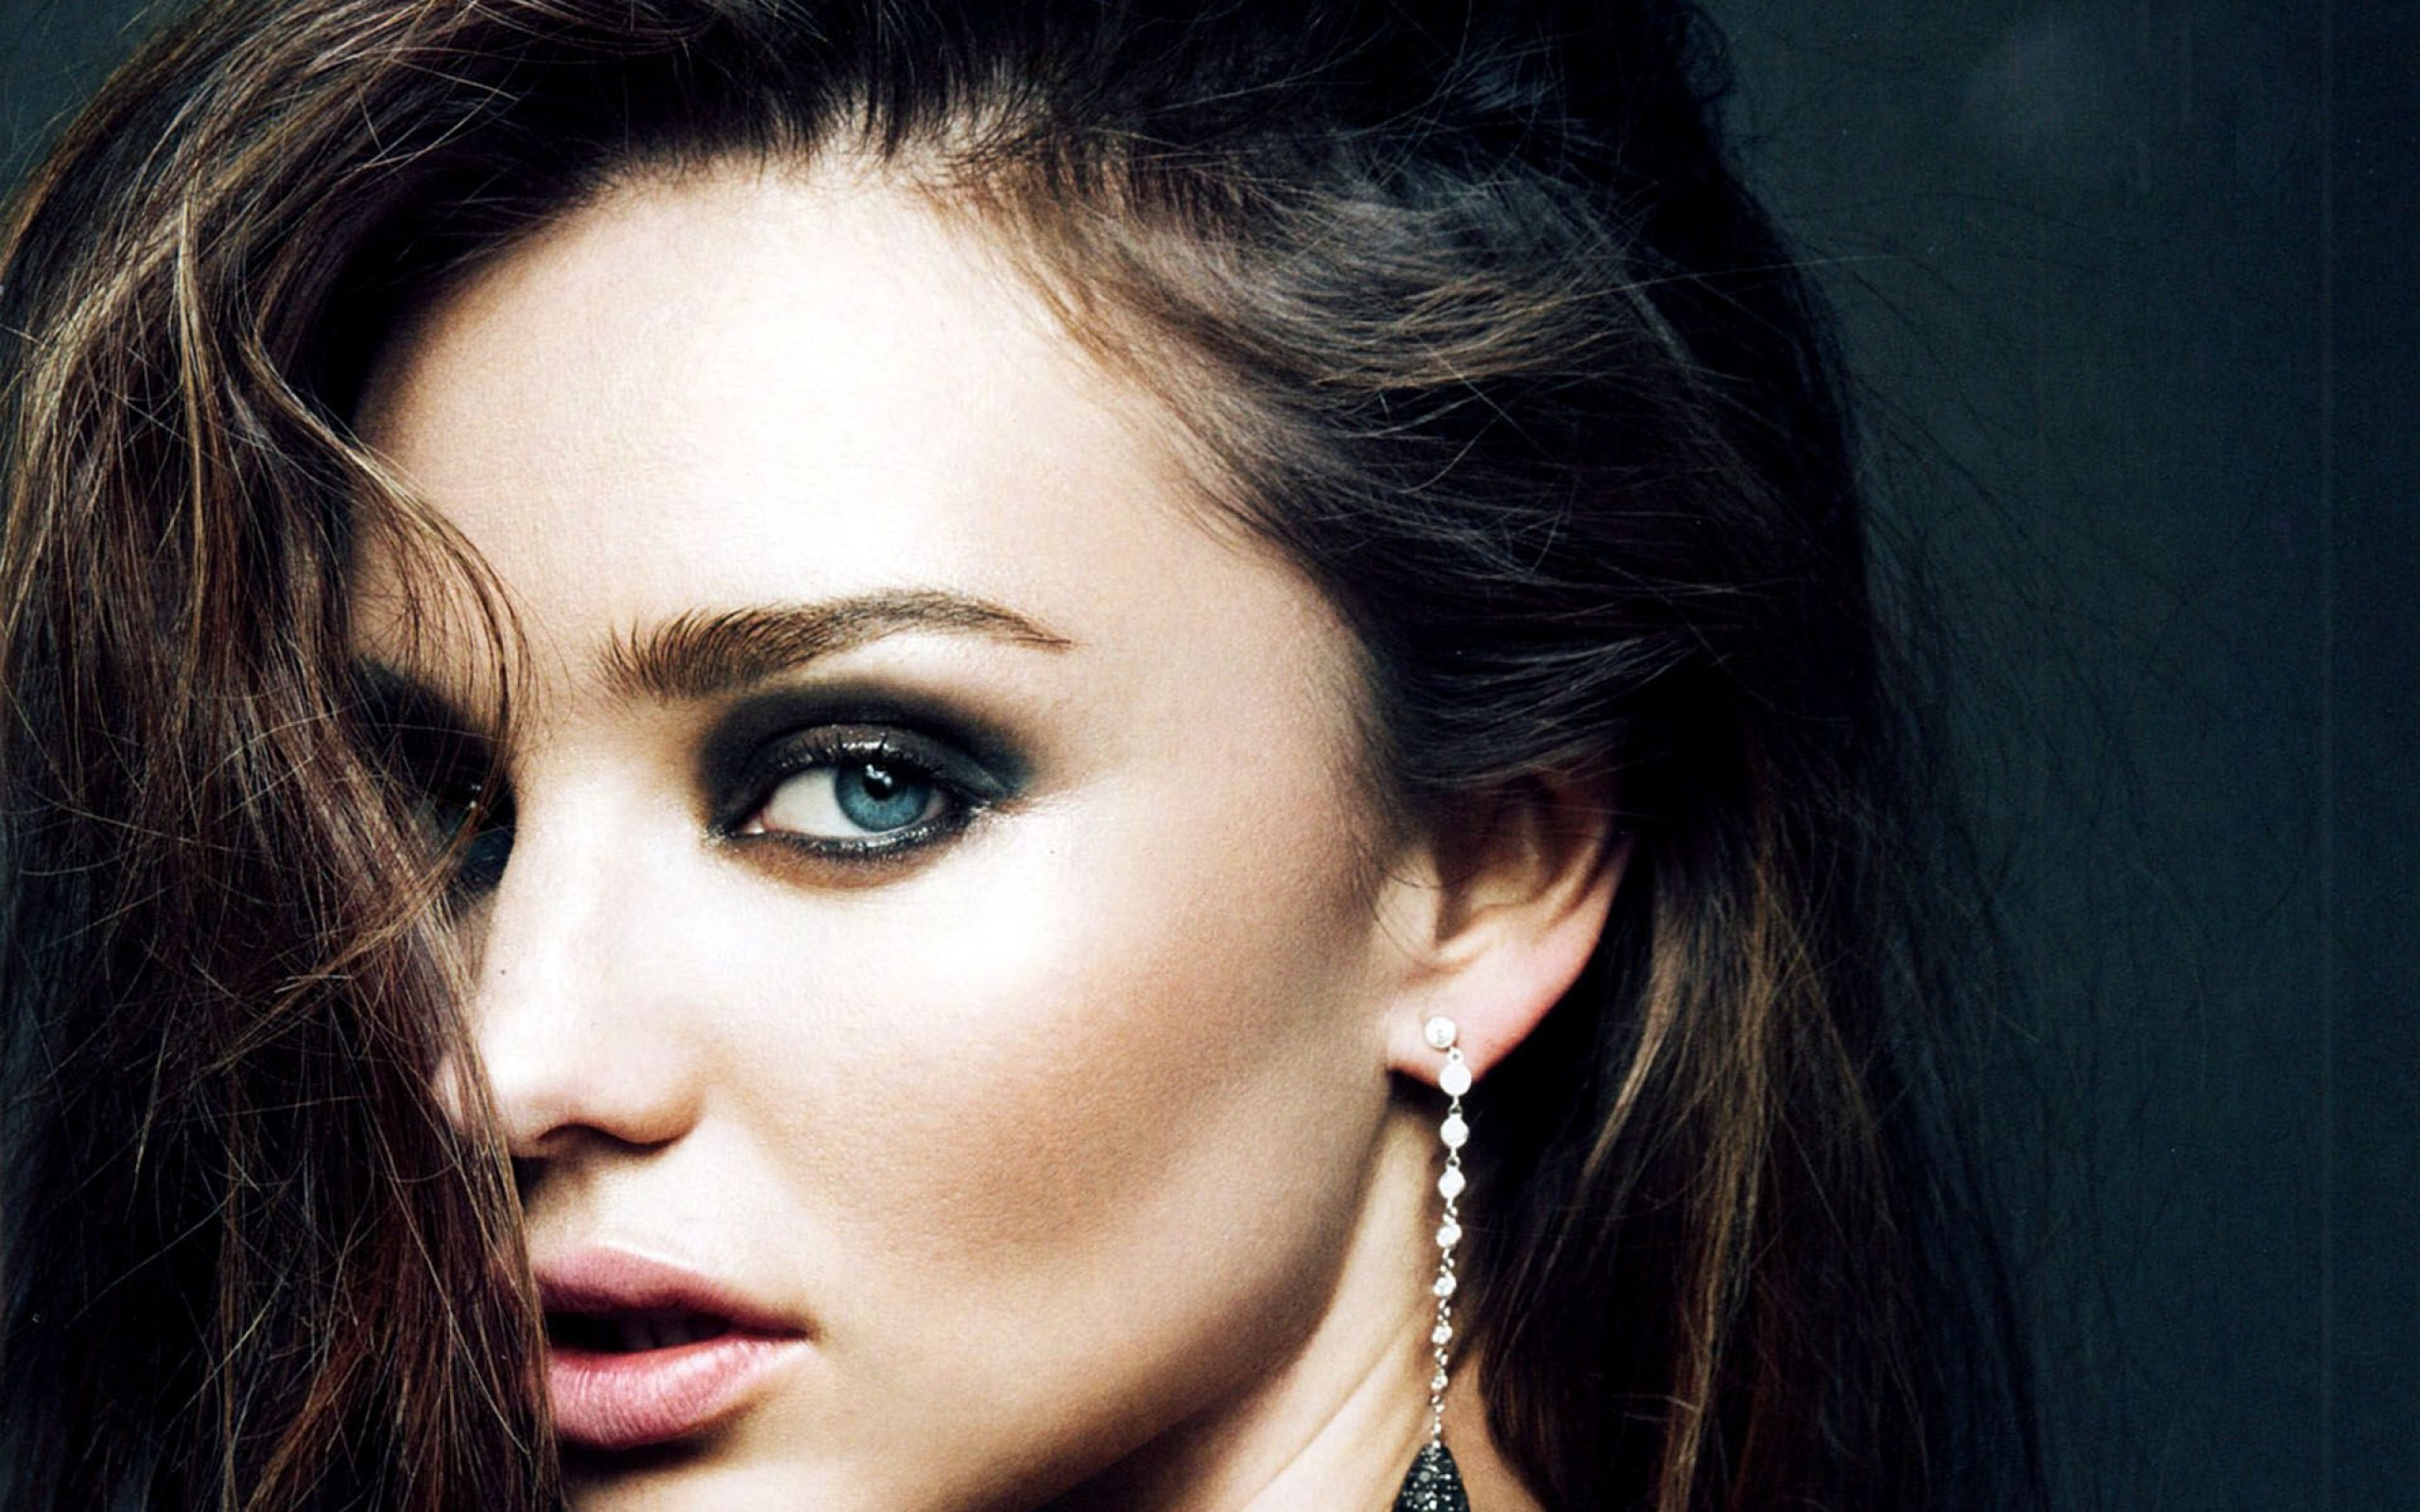 Miranda Kerr Steps Out With New Engagement Ring Photo